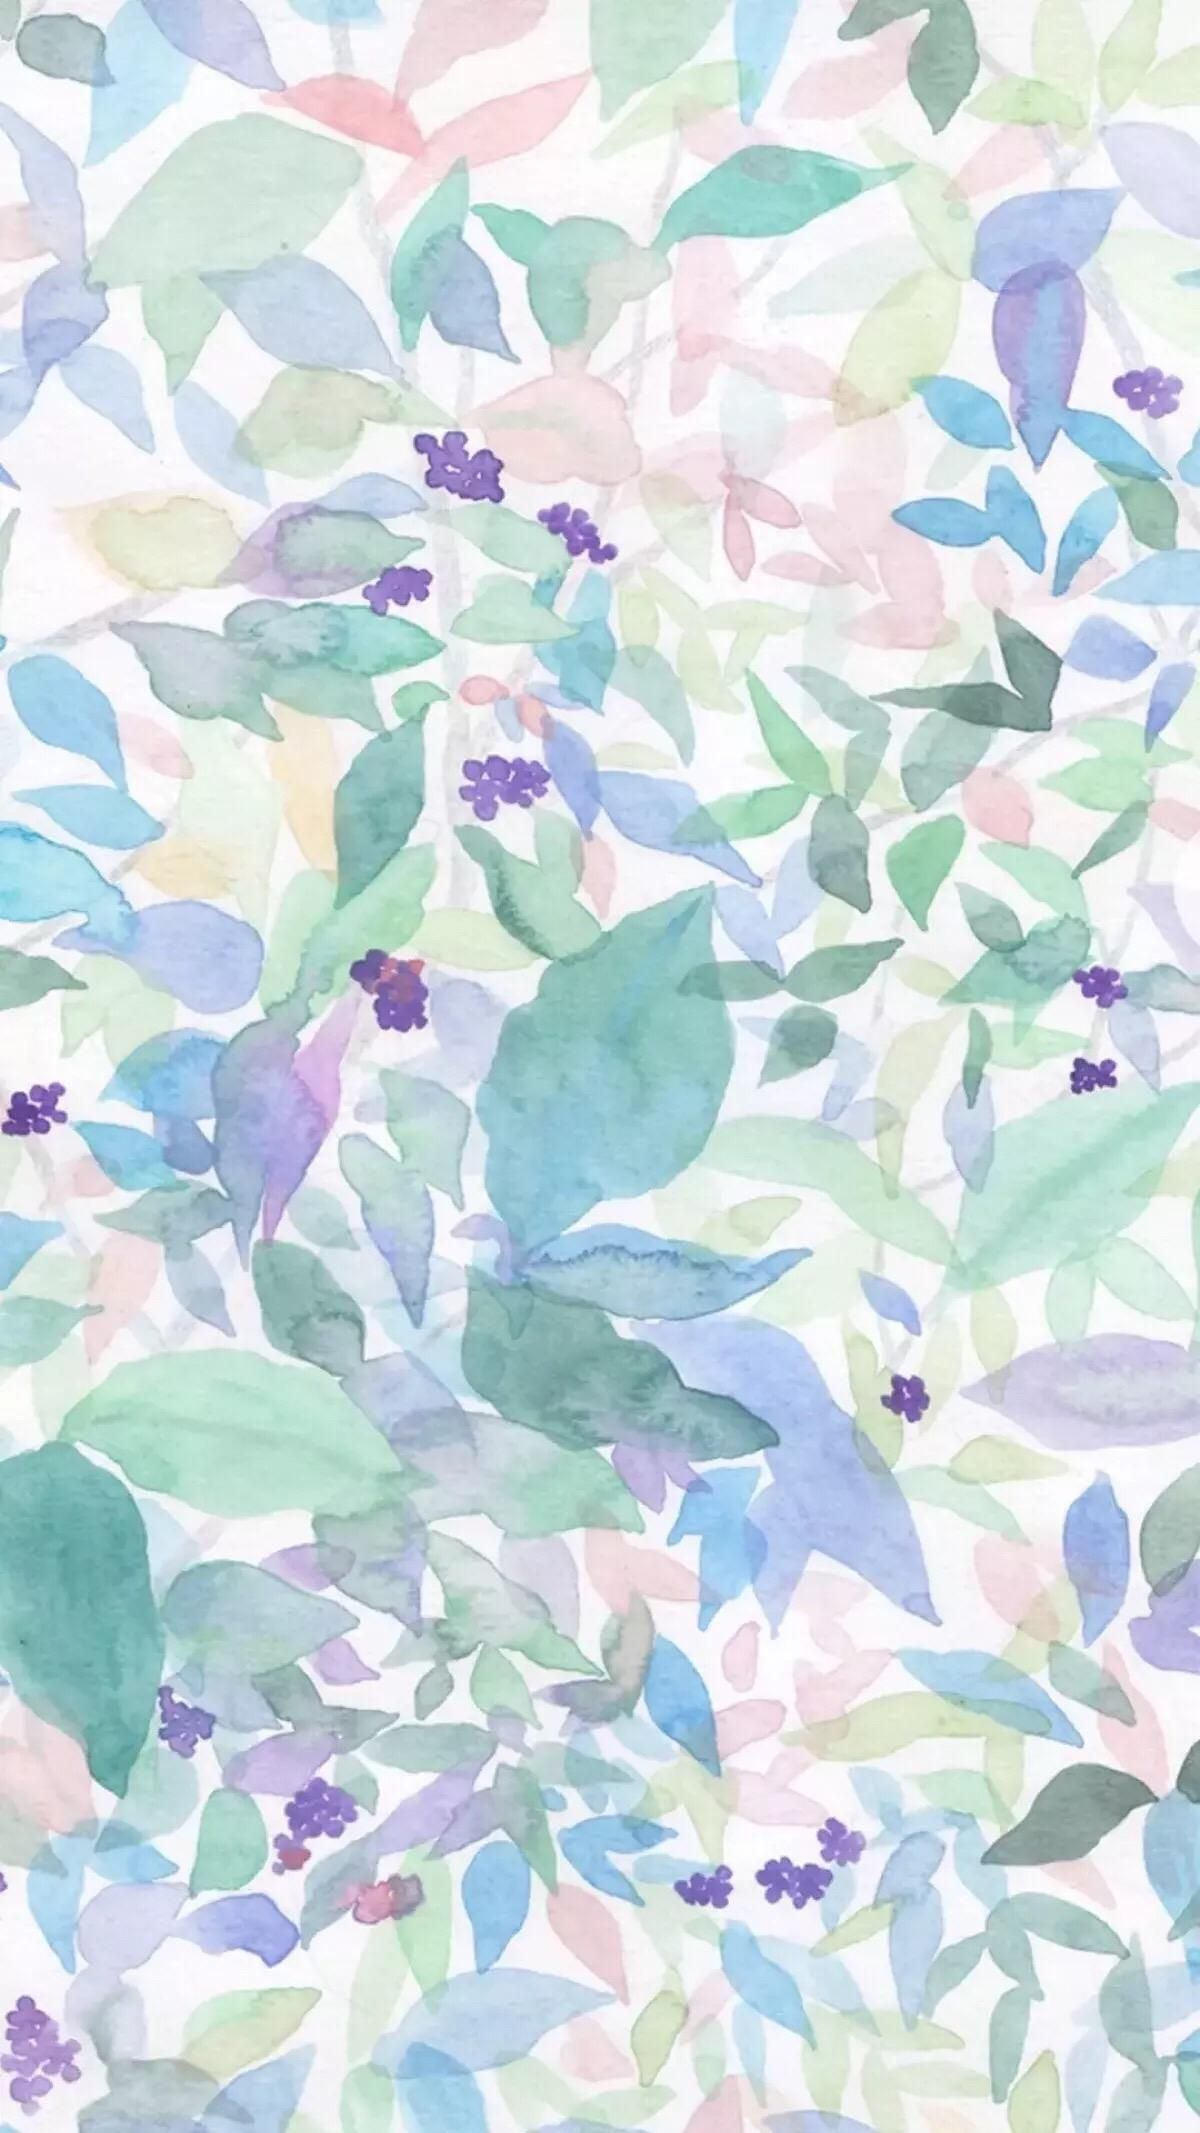 new design for digital printing Watercolor background